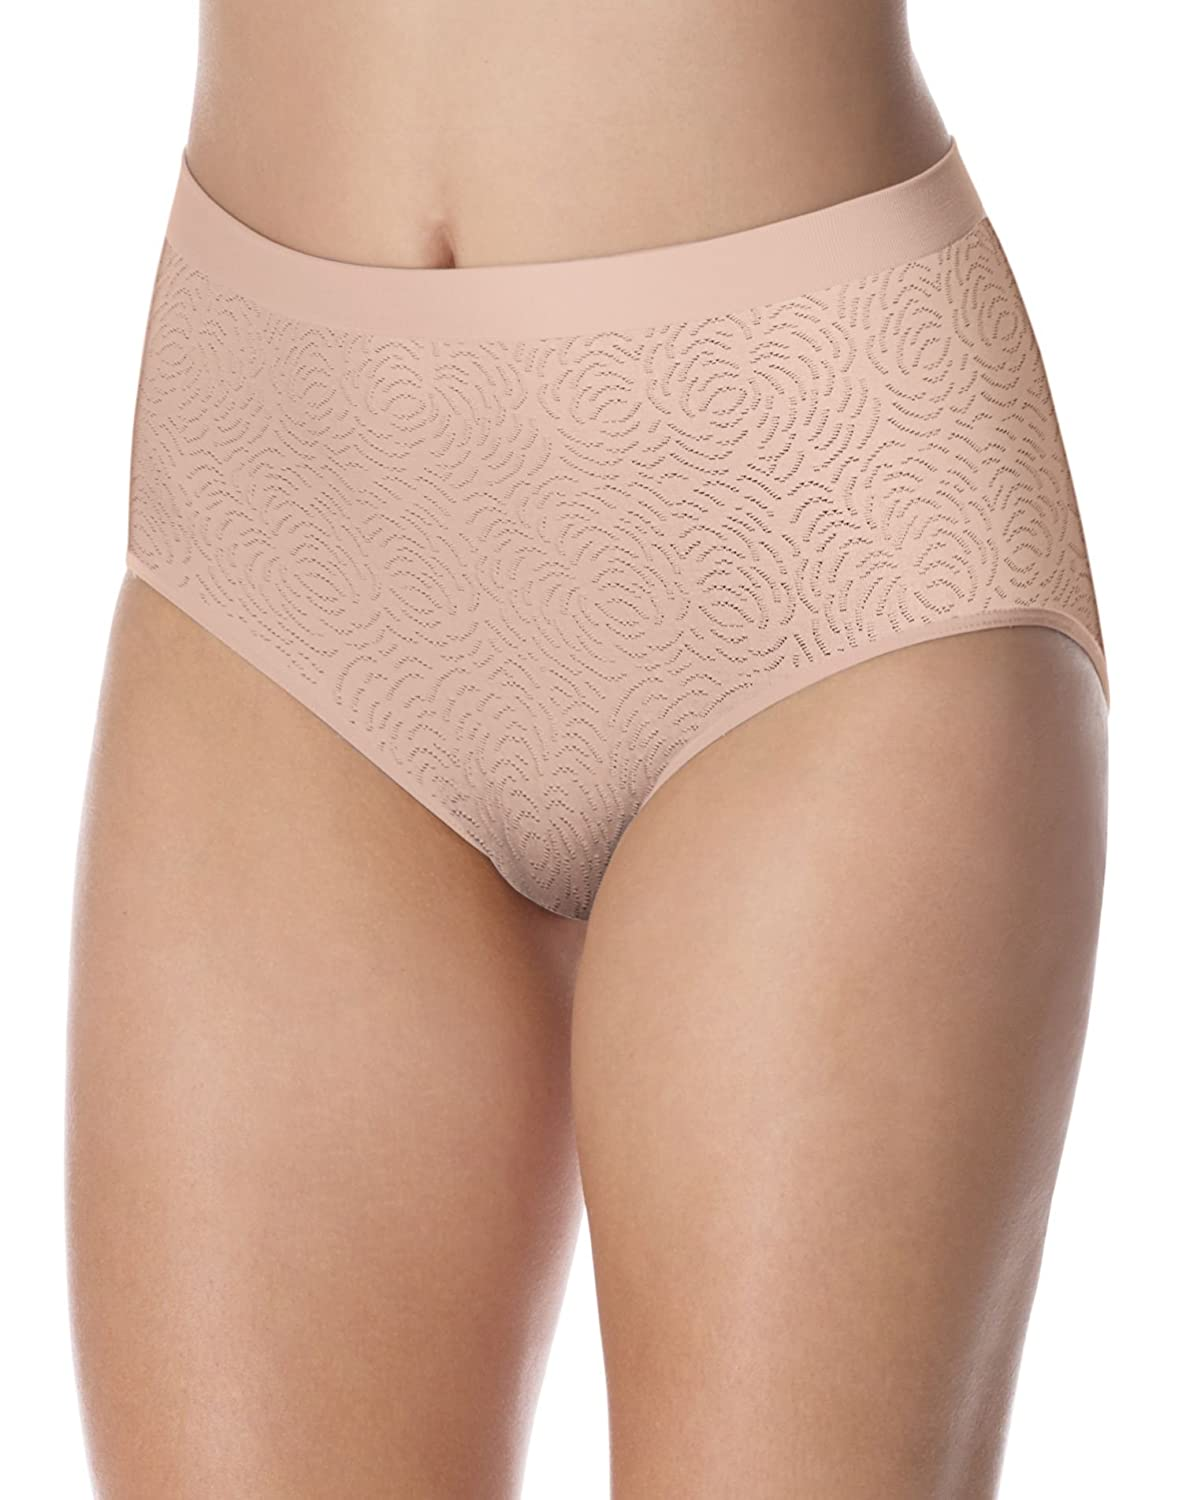 d700ae701eac Bali Comfort Revolution Women`s Microfiber Seamless Brief - Best-Seller!  Nude Damask 10/11 at Amazon Women's Clothing store: